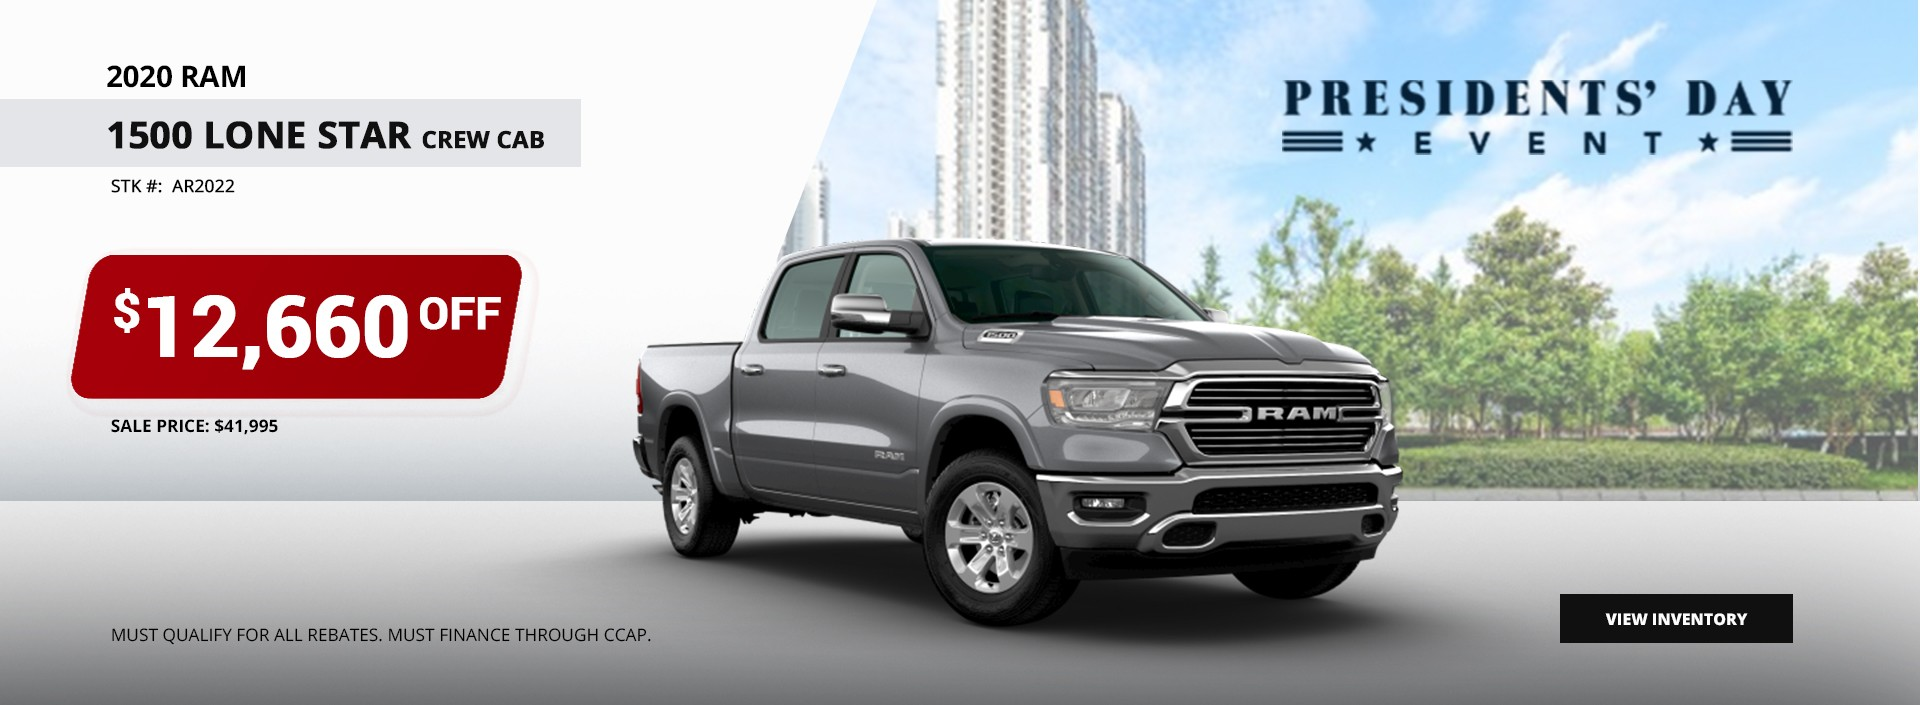 2020 Ram 1500 Lone Start Crew Cab $12,660 OFF at President's Day Event